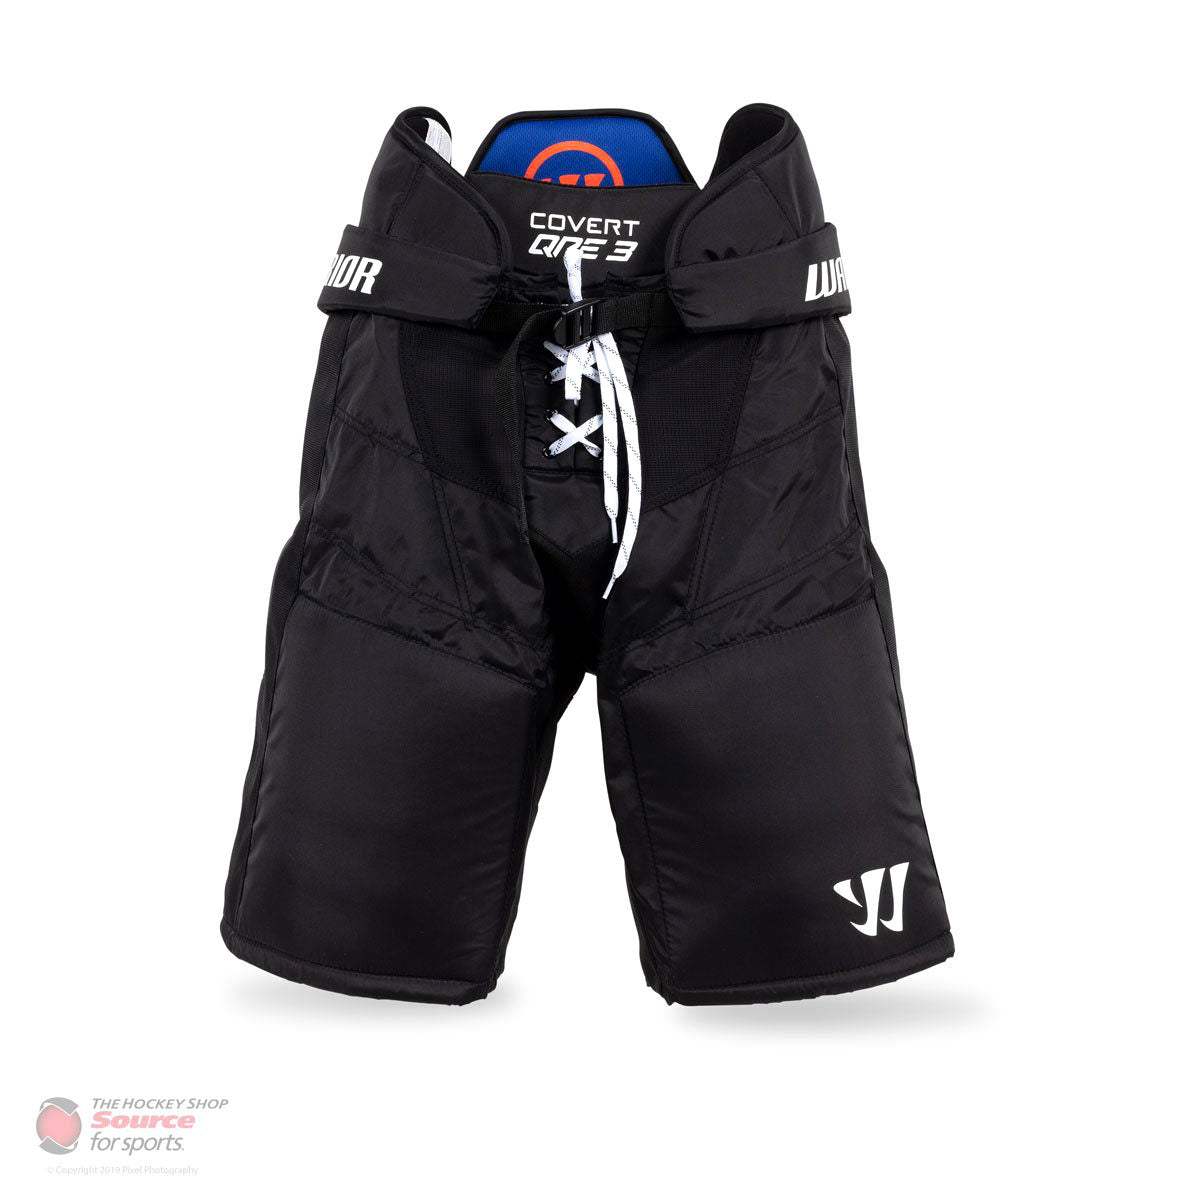 Warrior Covert QRE 3 Junior Hockey Pants